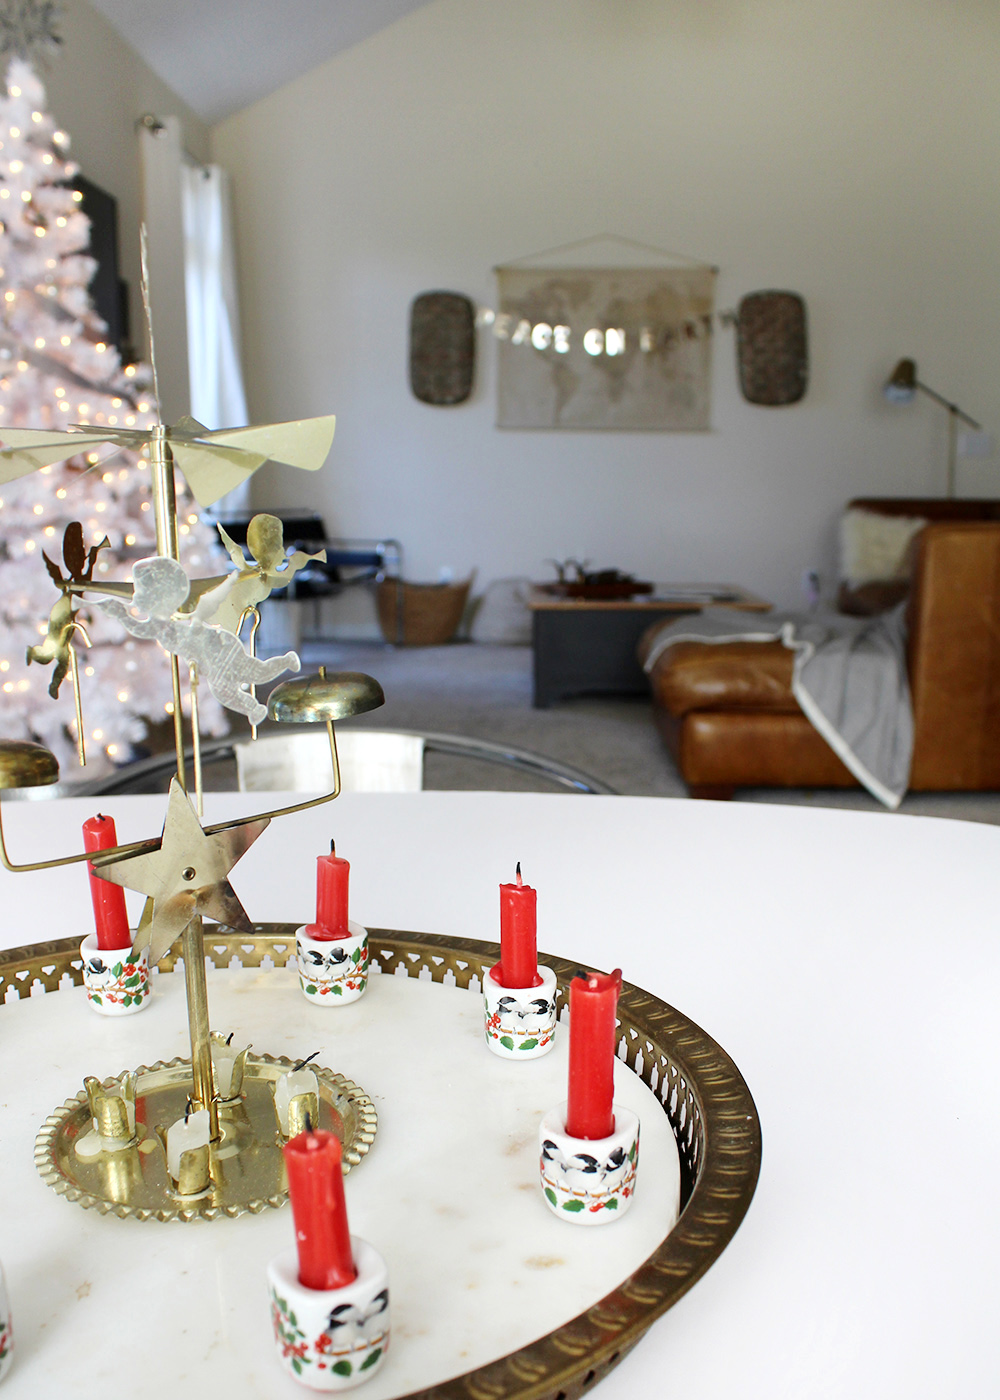 vintage brass angel chime with candles | Christmas decor ideas